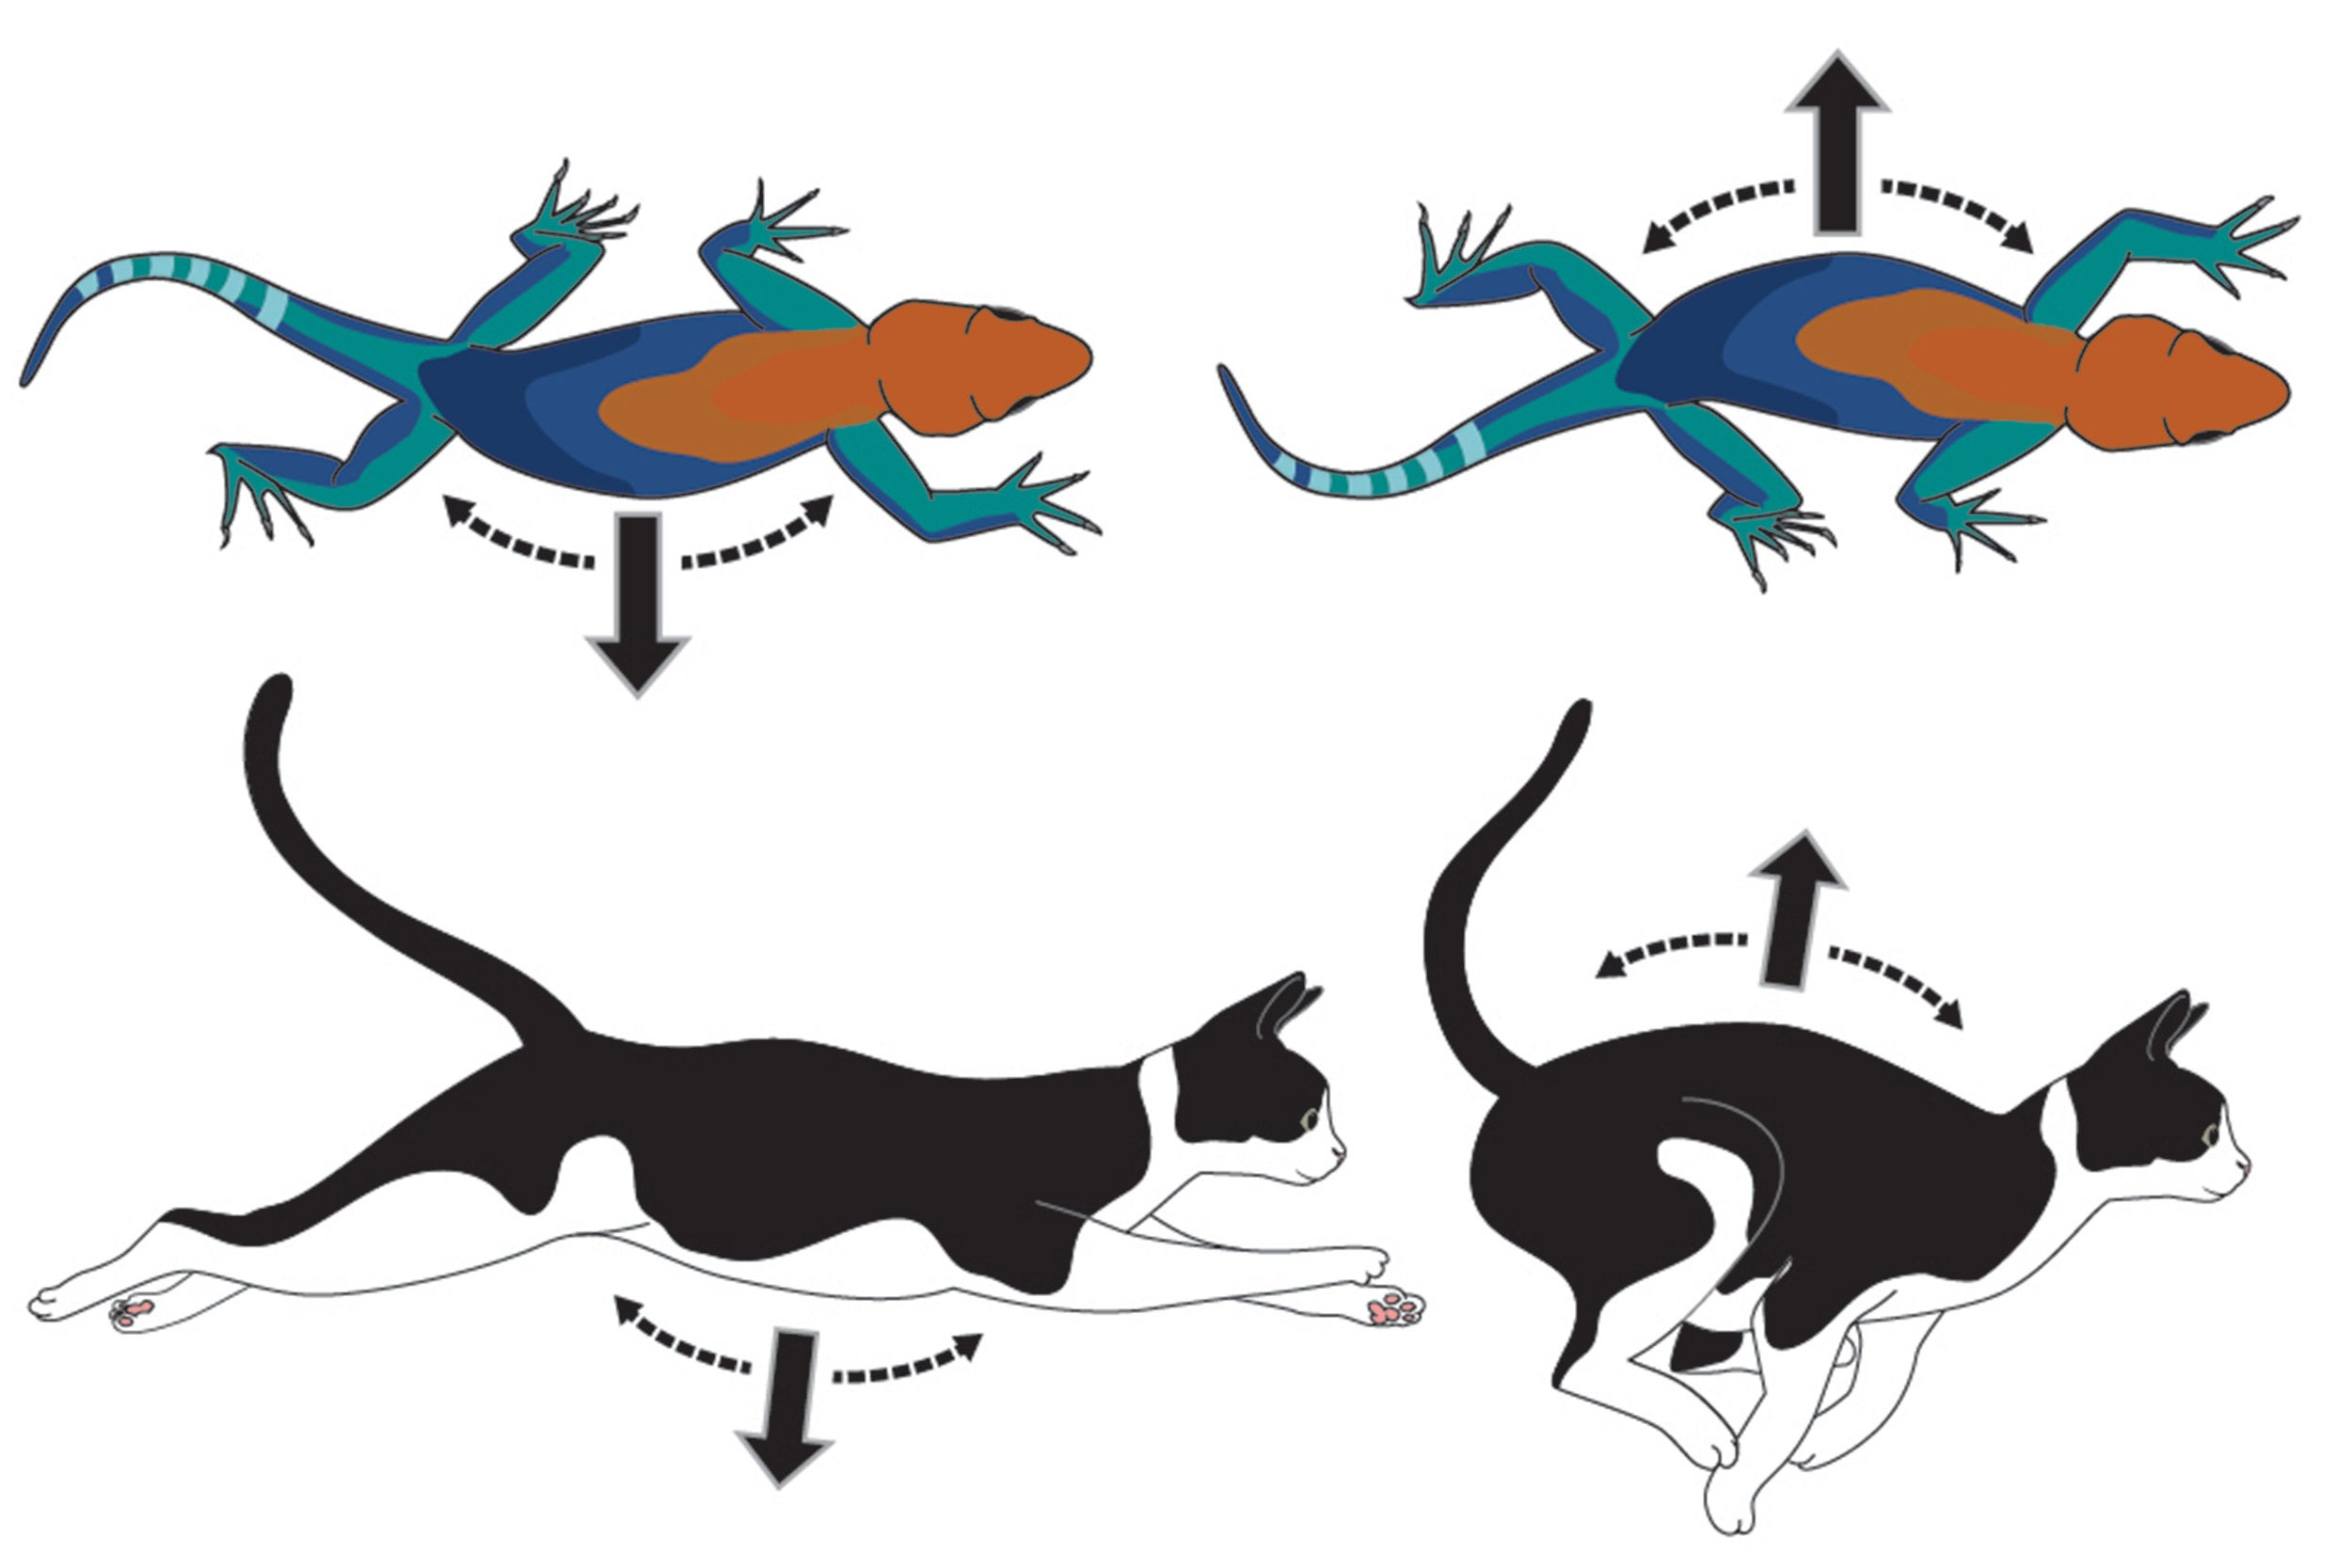 Lizard and cat movements